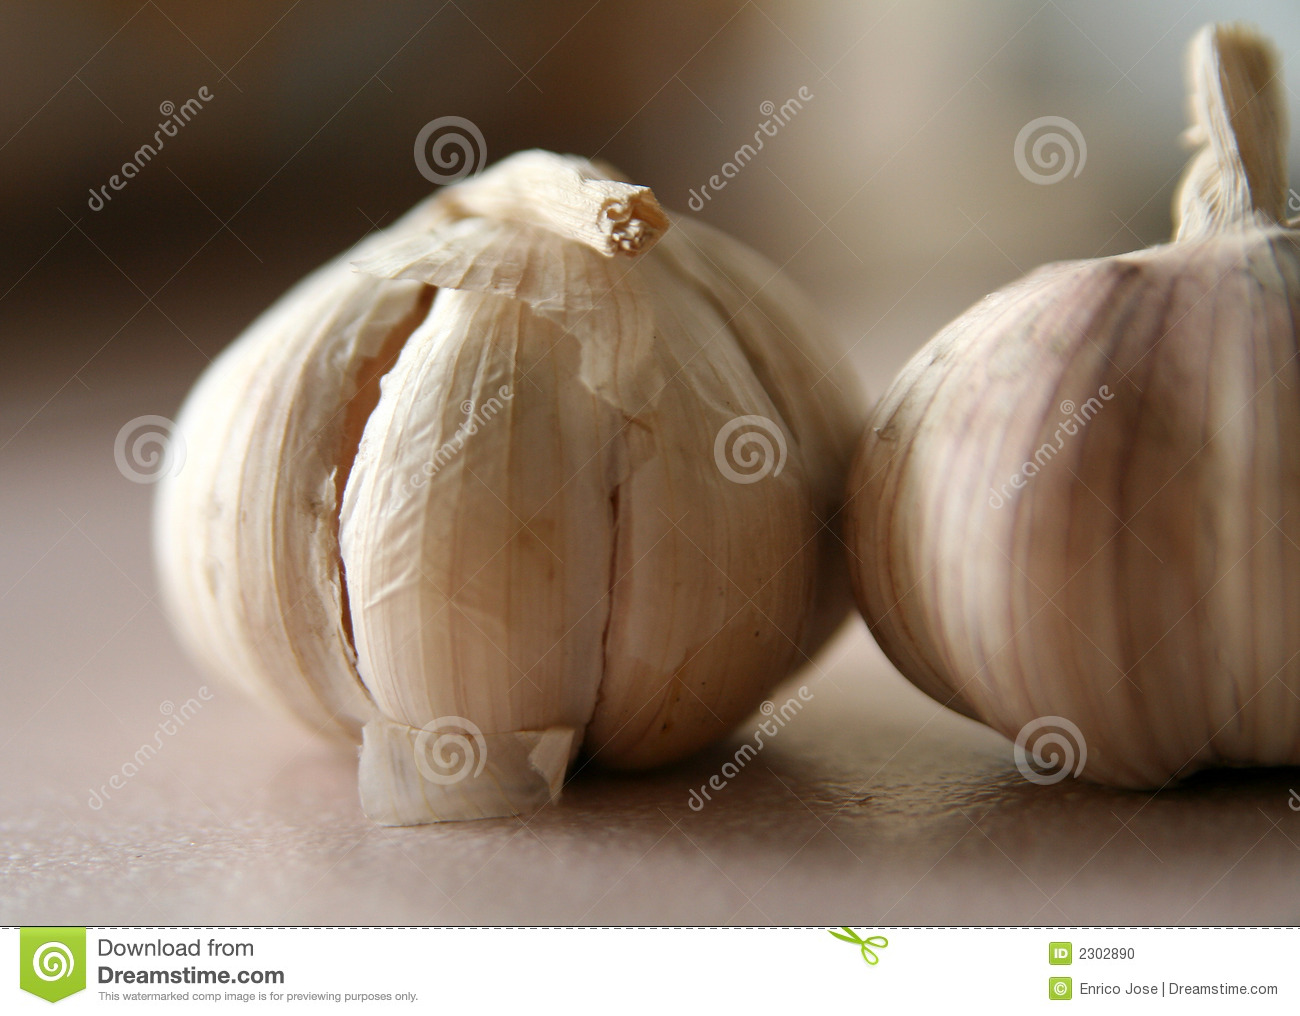 2 cloves of garlic stock photo. Image of moody, close ...